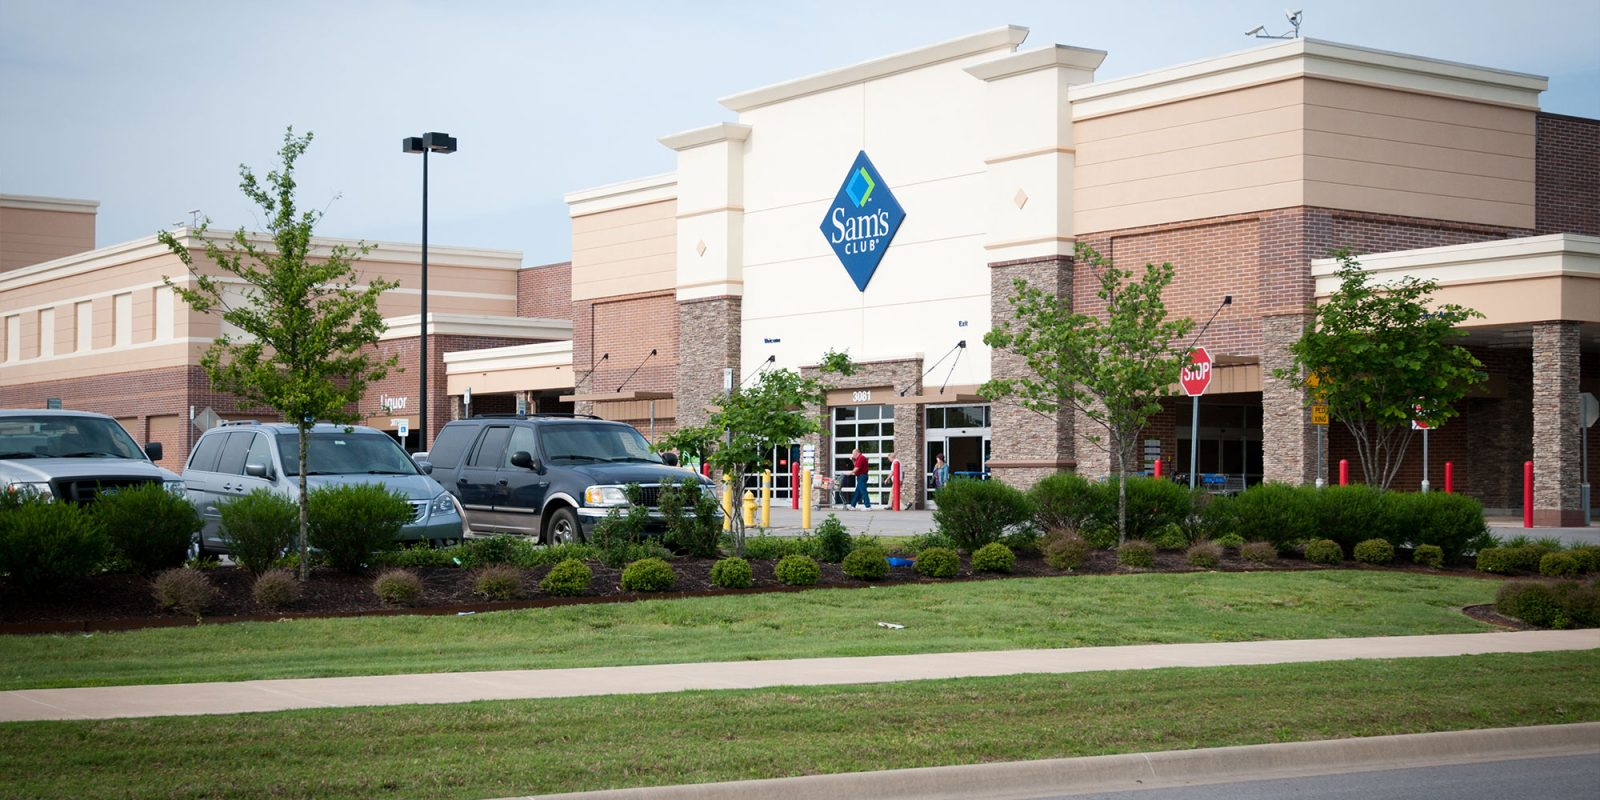 Sam's Club December one-day sale has $300 gift card with iPhone purchase, more